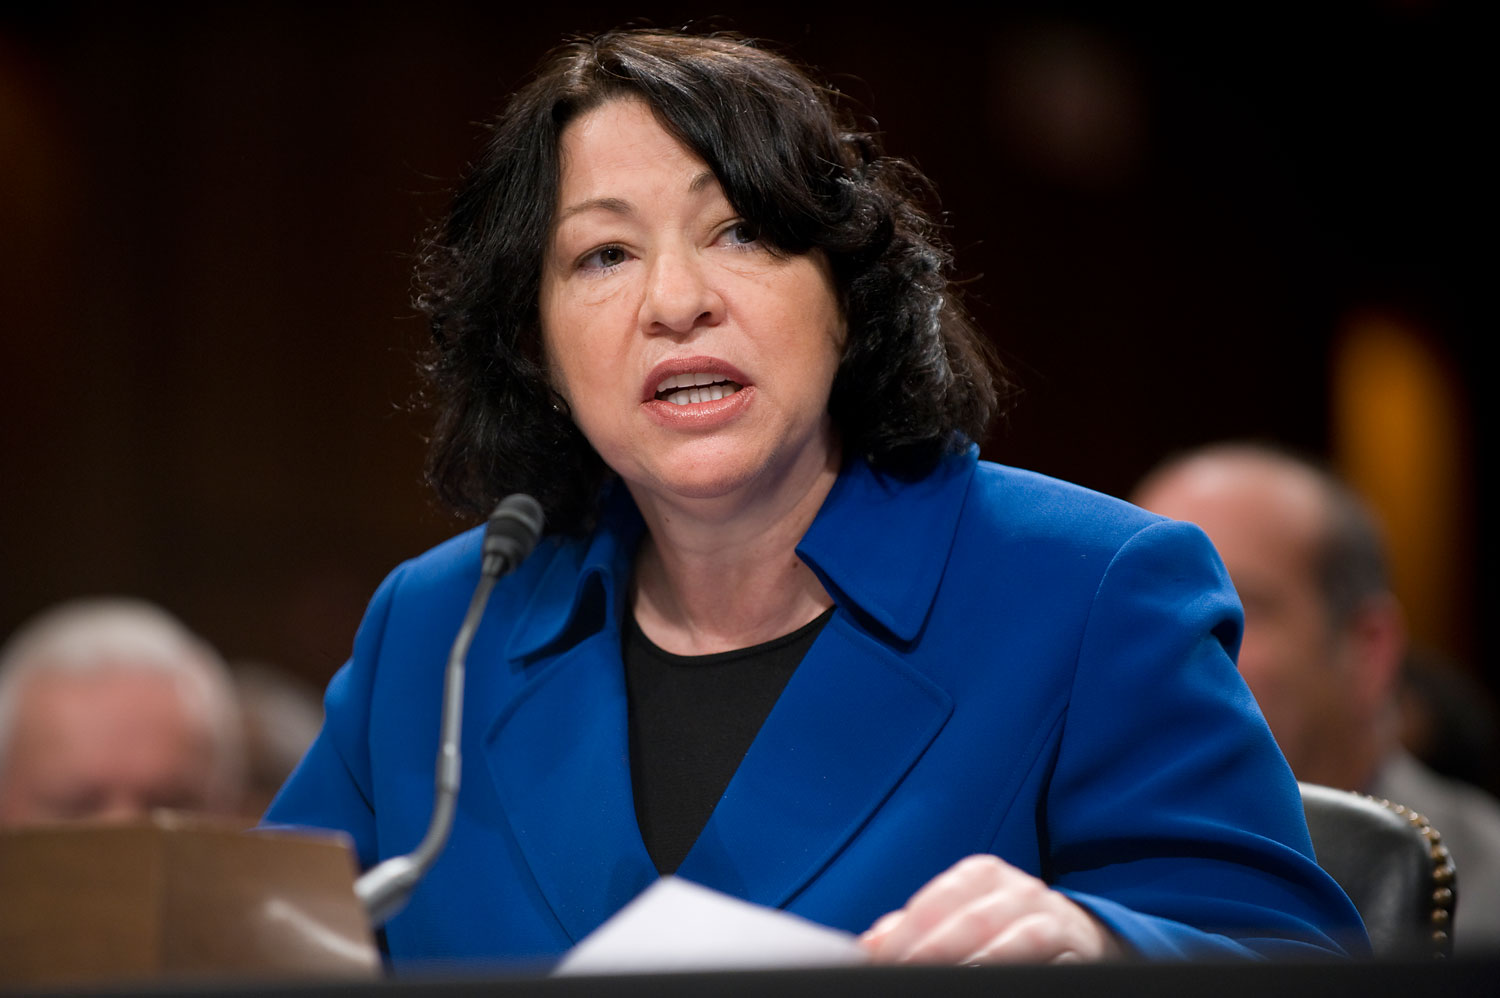 Supreme Court nominee Sonia Sotomayor makes on opening statement during her confirmation hearing before the Senate Judiciary Committee, July 13, 2009.